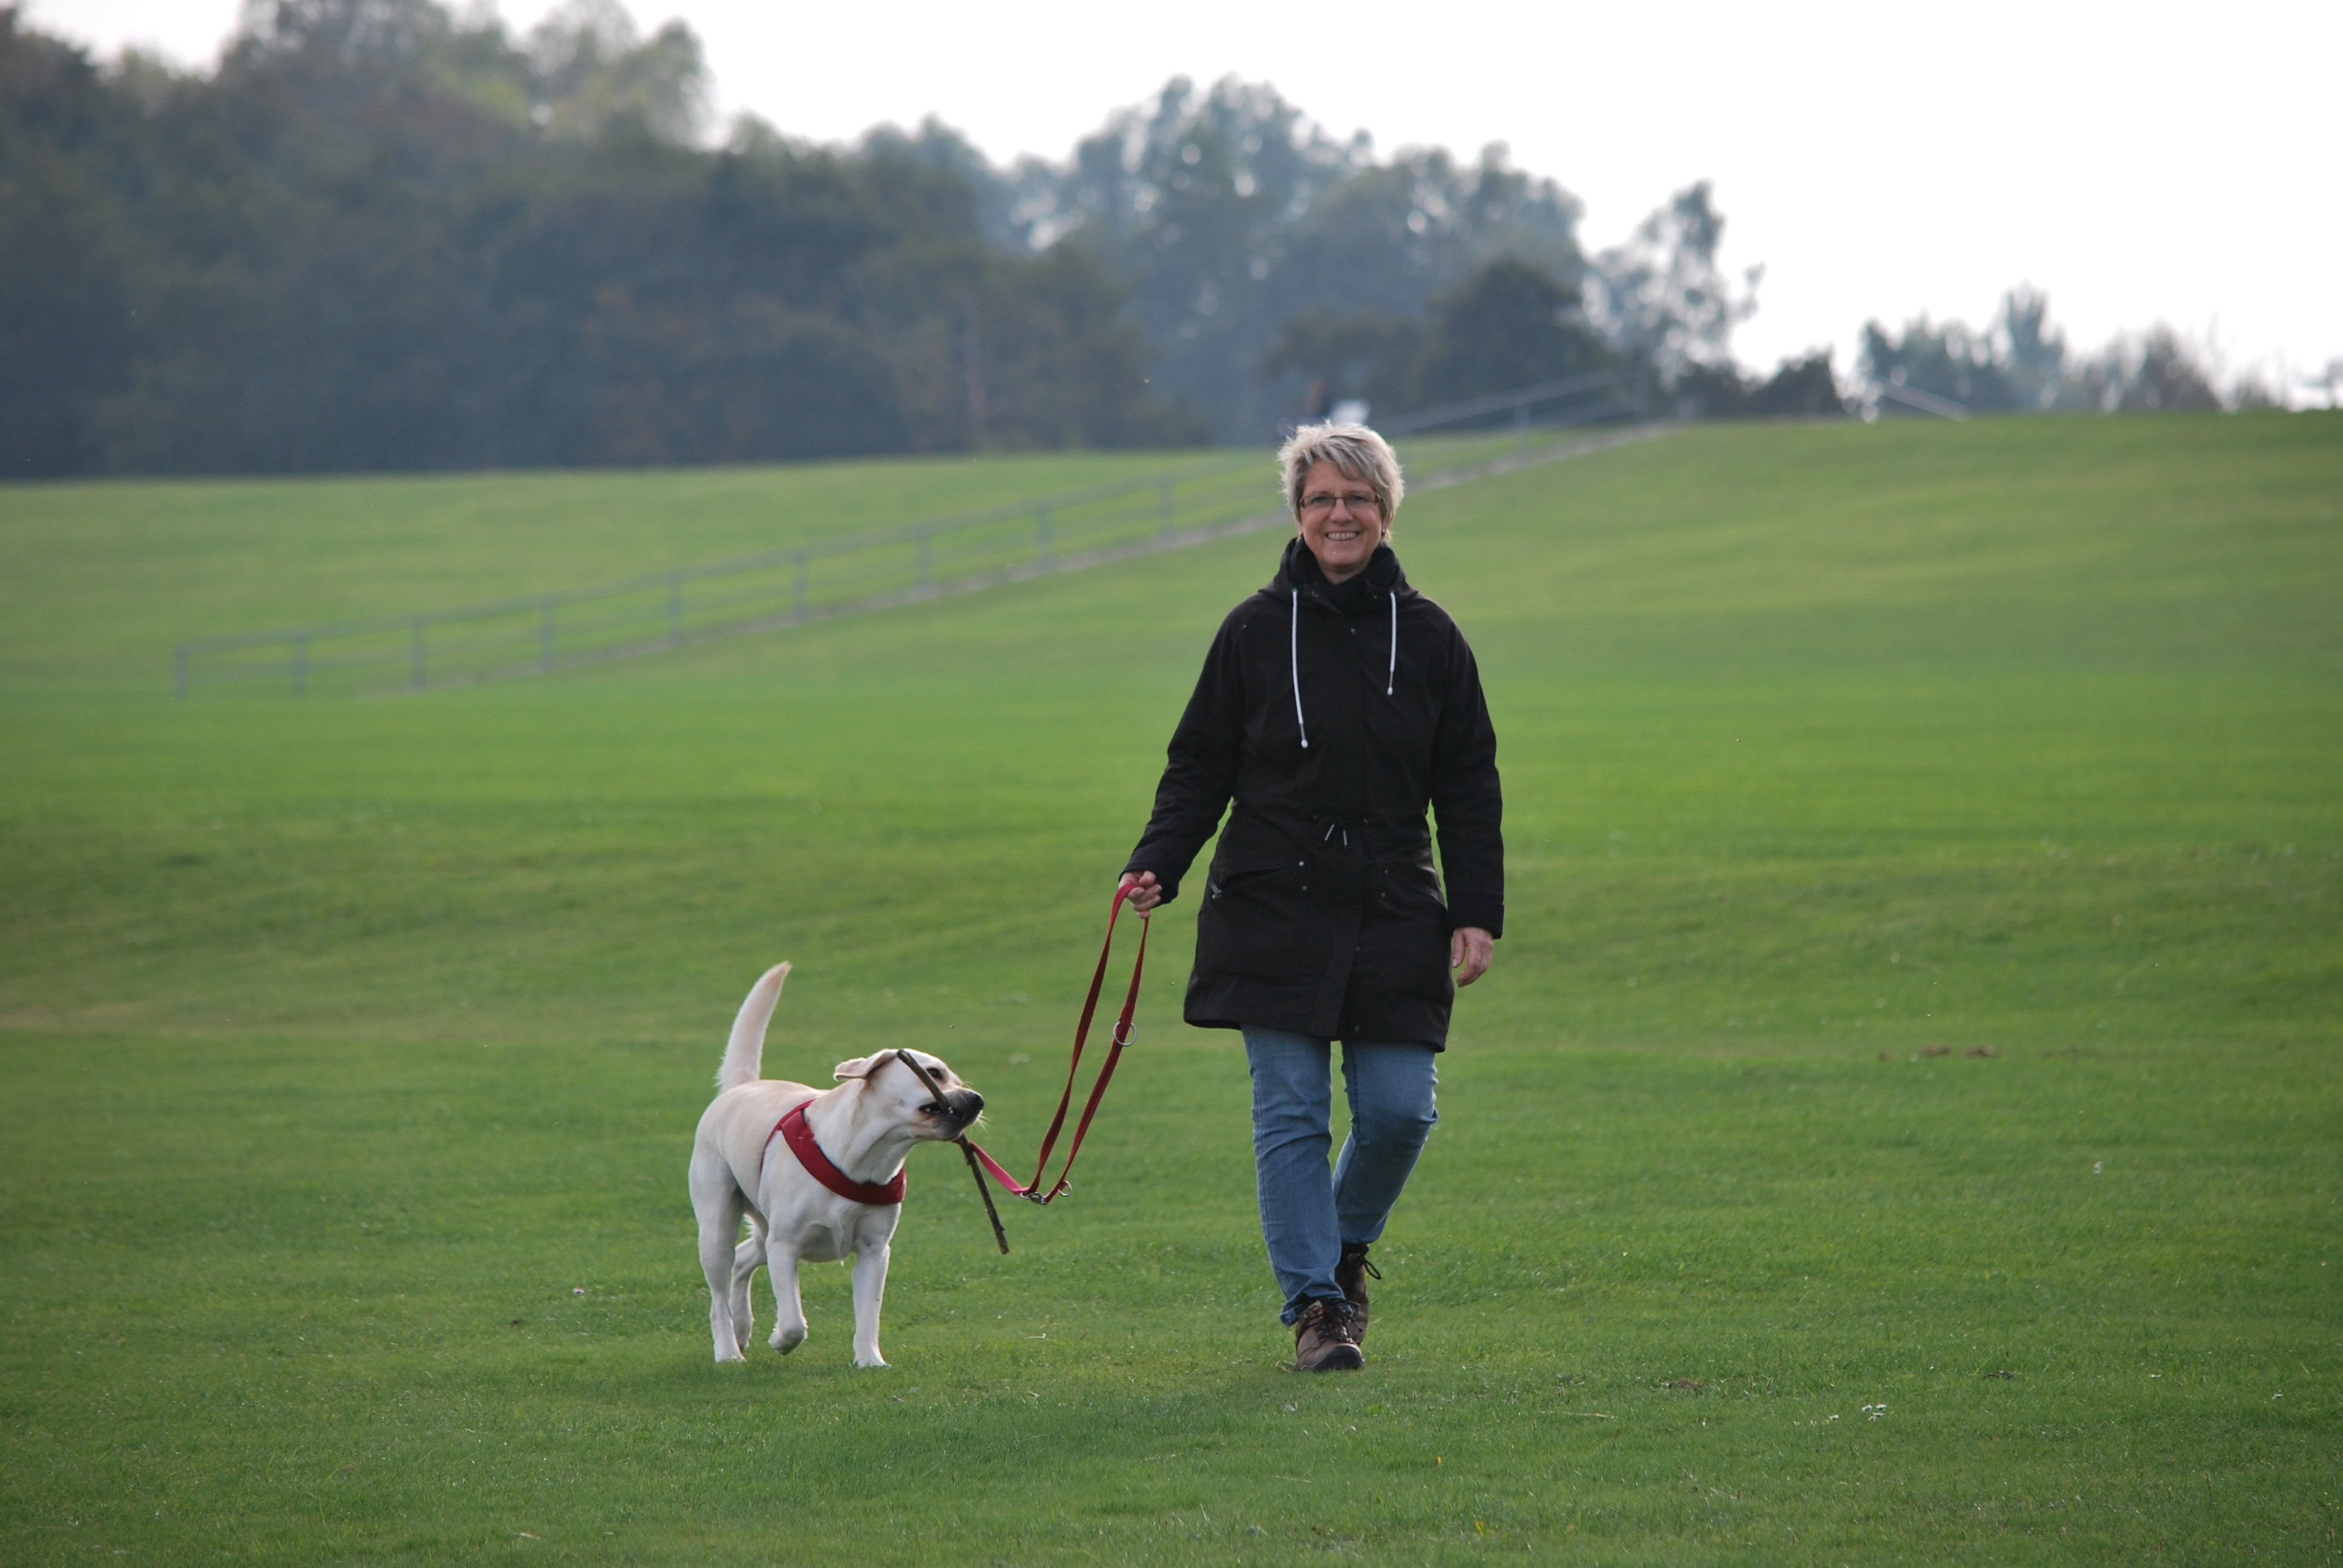 Woman Walking on Grass Field With Yellow Labrador Retriever Puppy